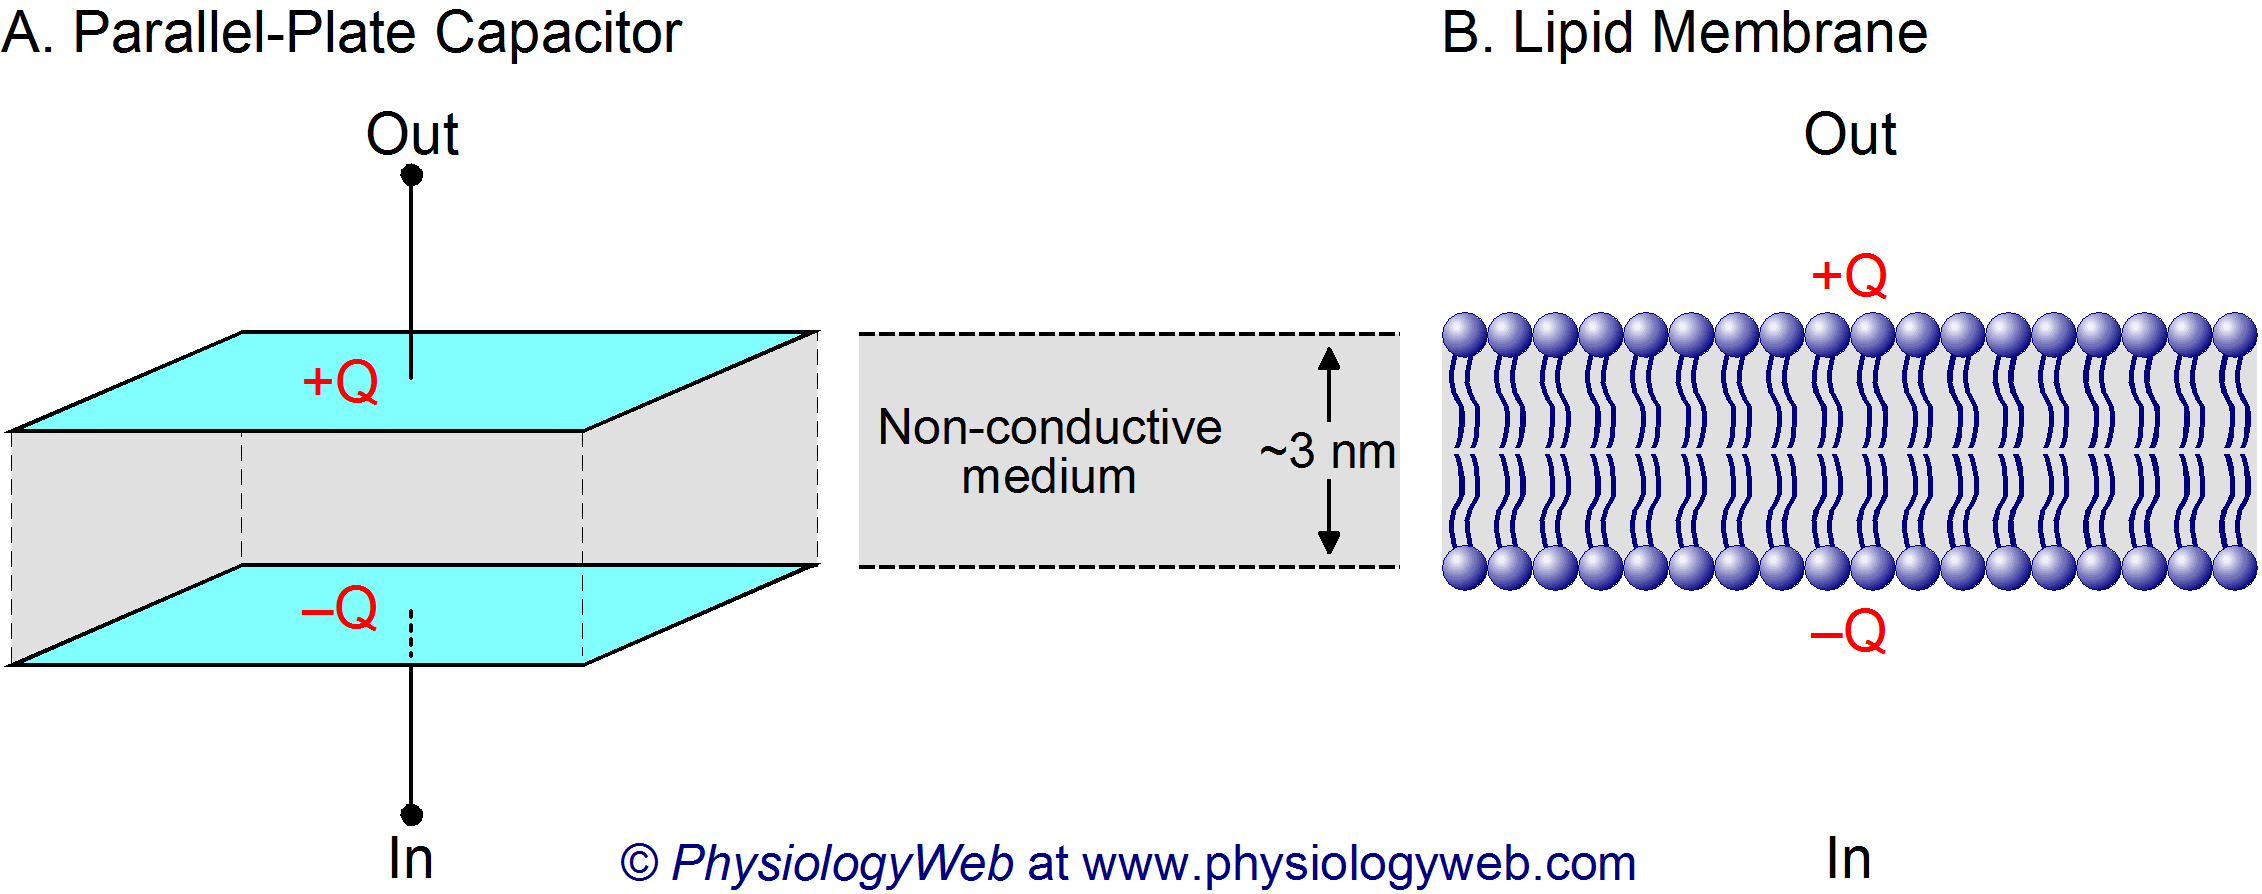 Biological membrane as capacitor